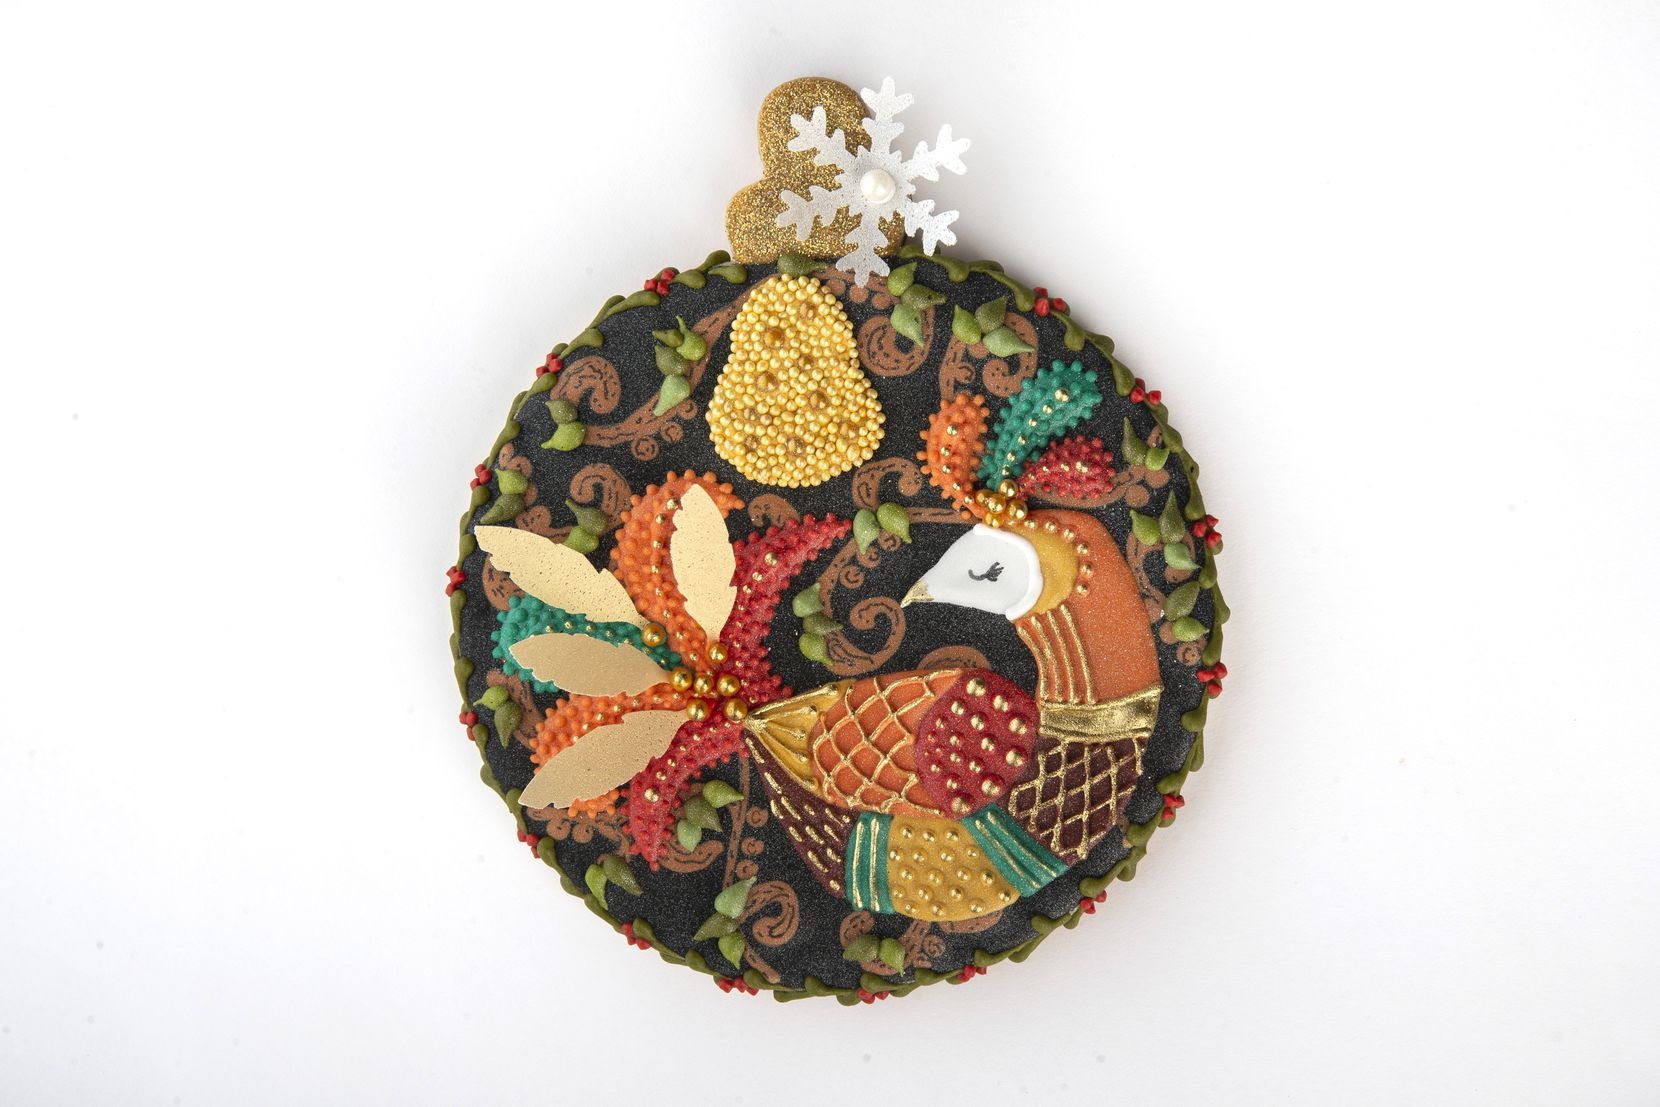 The First Day of Christmas Ornament (Partridge in a Pear Tree), made by Suzanne Whitbourne, won the cookie man category at the annual Holiday Cookie Contest hosted by The Dallas Morning News.